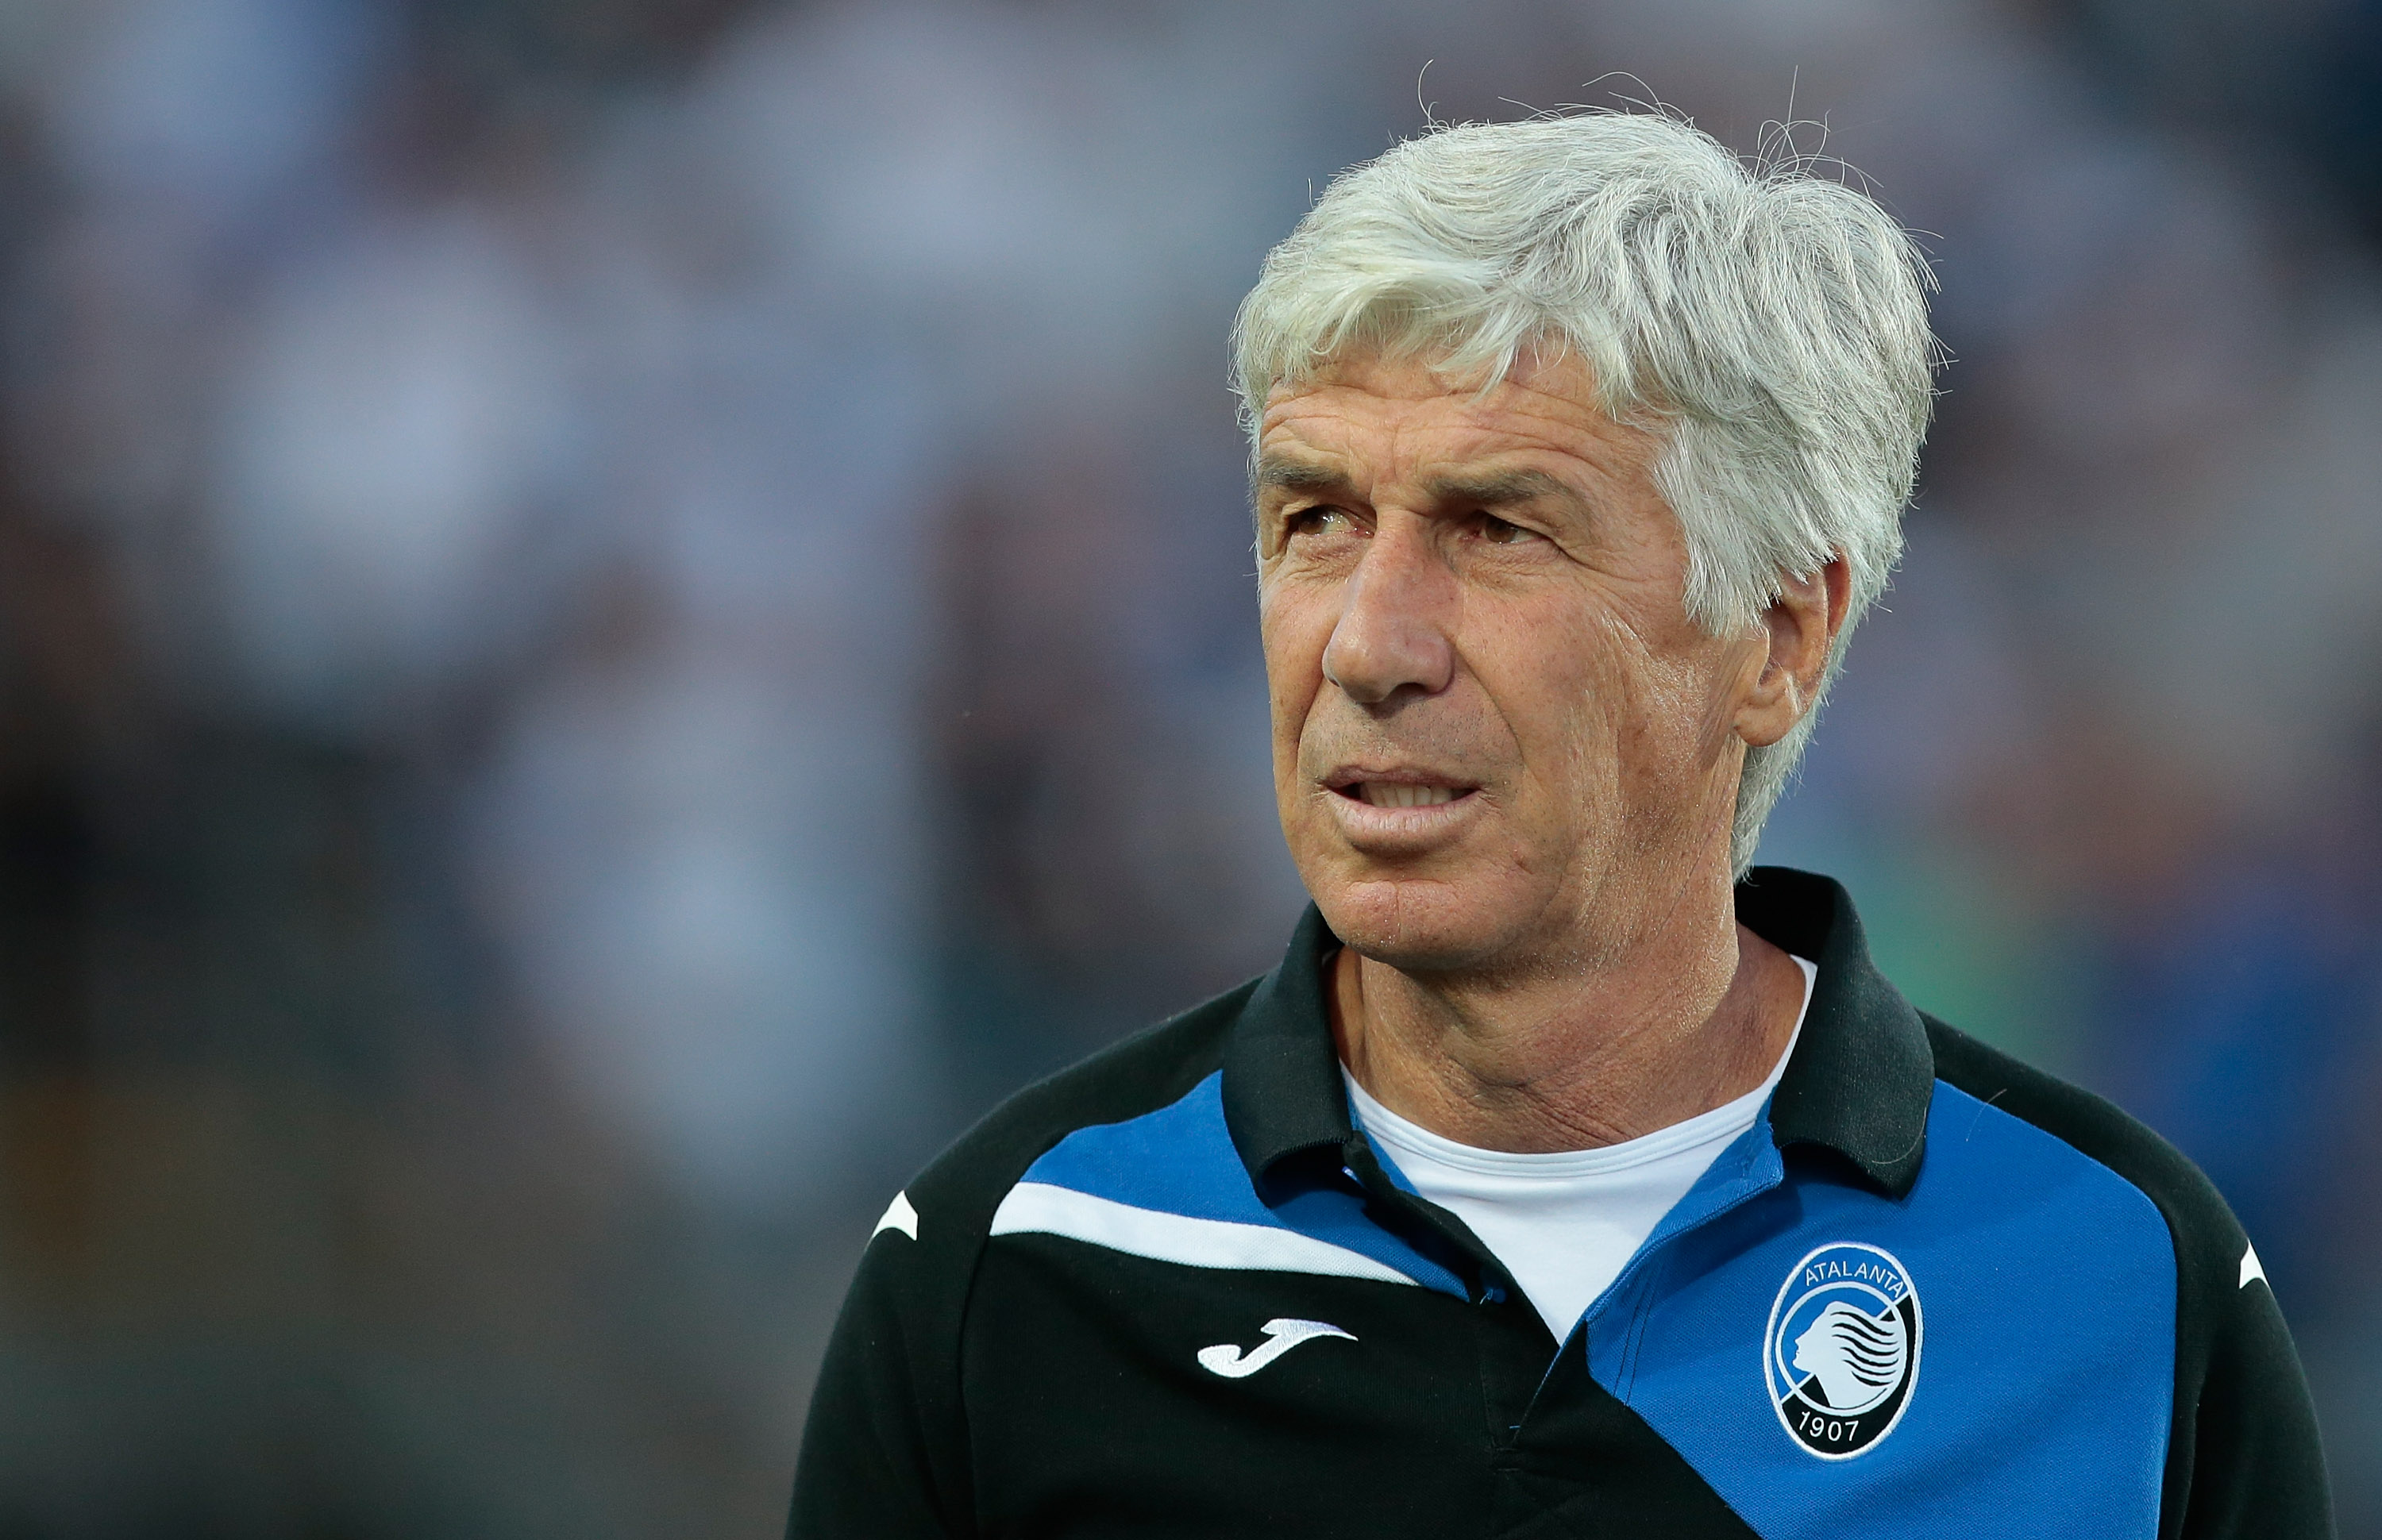 BERGAMO, ITALY - JULY 26: Atalanta BC coach Gian Piero Gasperini looks on before the pre-season friendly match between Atalanta BC and LOSC Lille at Stadio Atleti Azzurri d'Italia on July 26, 2017 in Bergamo, Italy. (Photo by Emilio Andreoli/Getty Images)